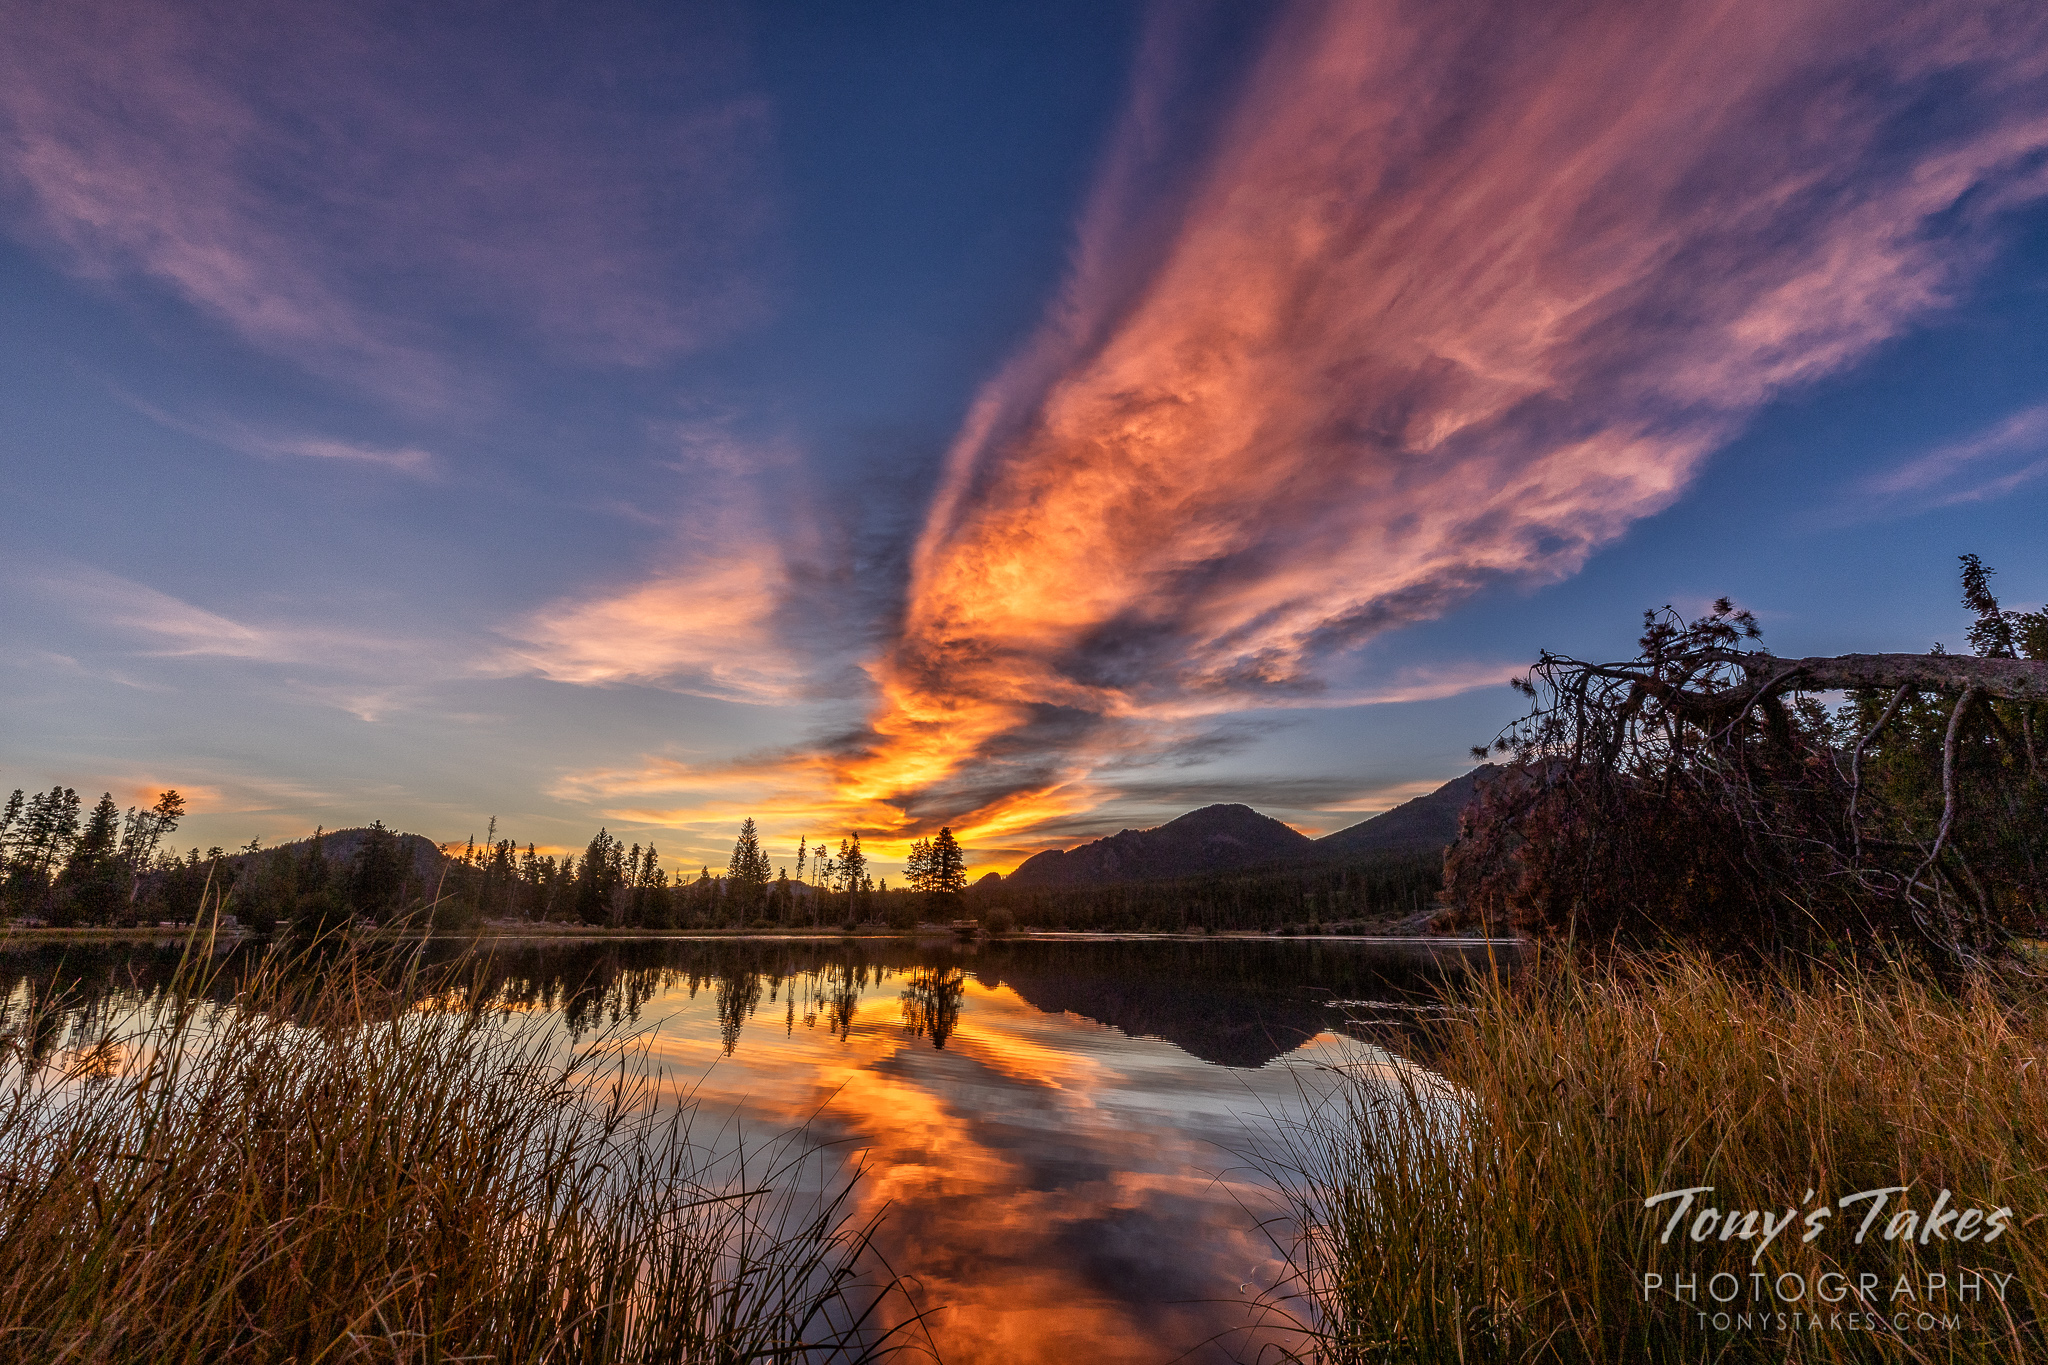 A beautiful sunrise with reflections on Sprague Lake in Rocky Mountain National Park. (© Tony's Takes)